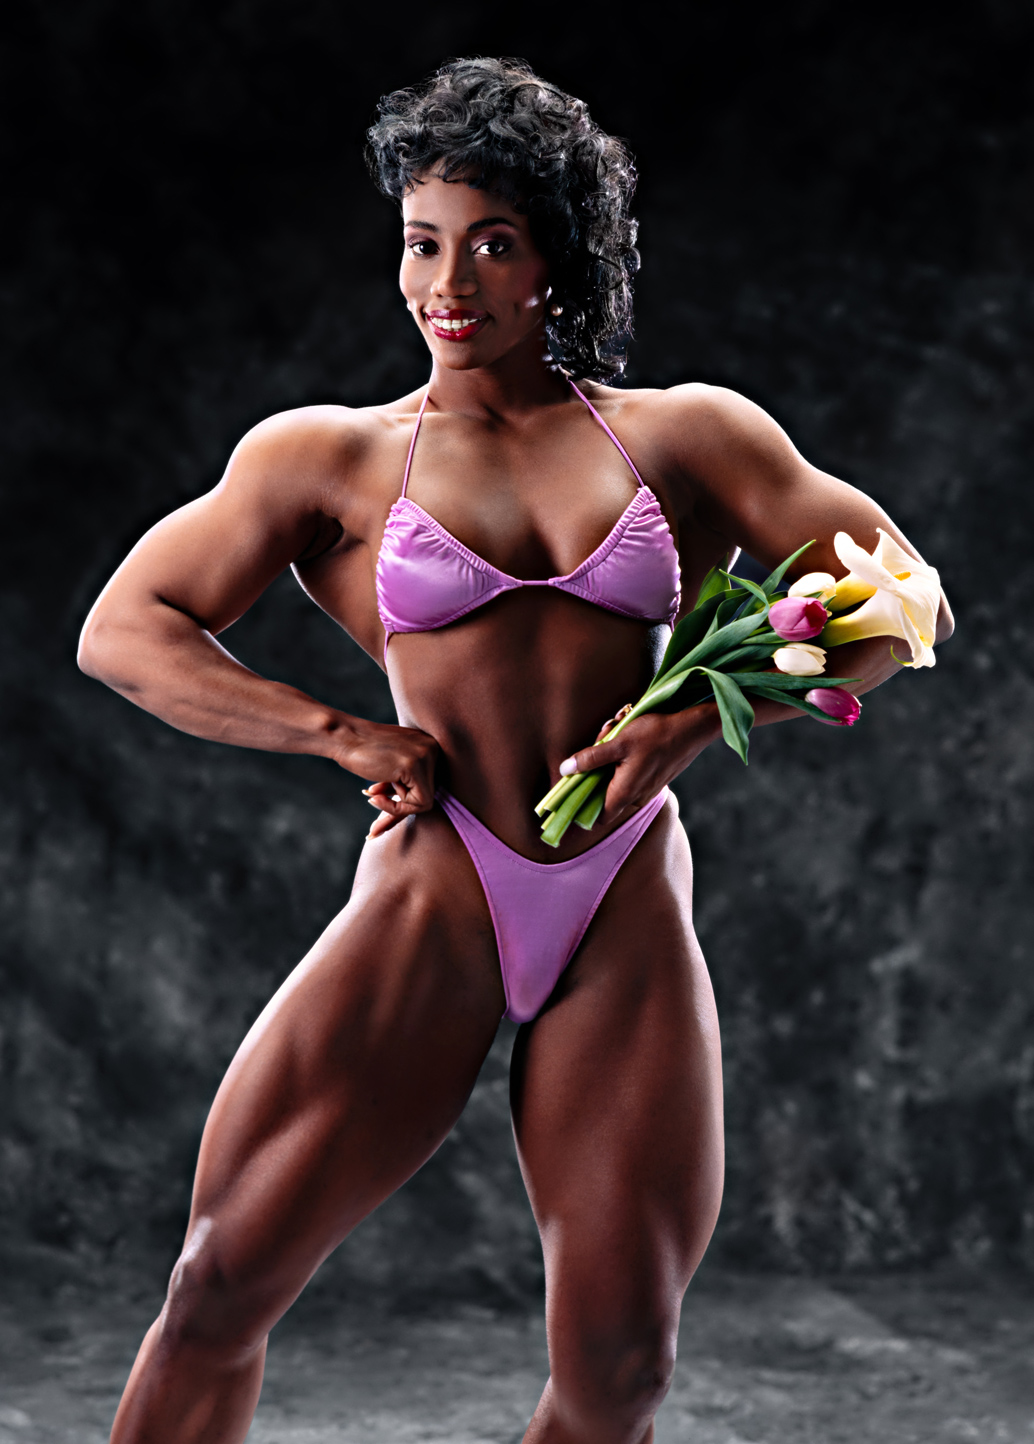 photography of body builders fitness experts